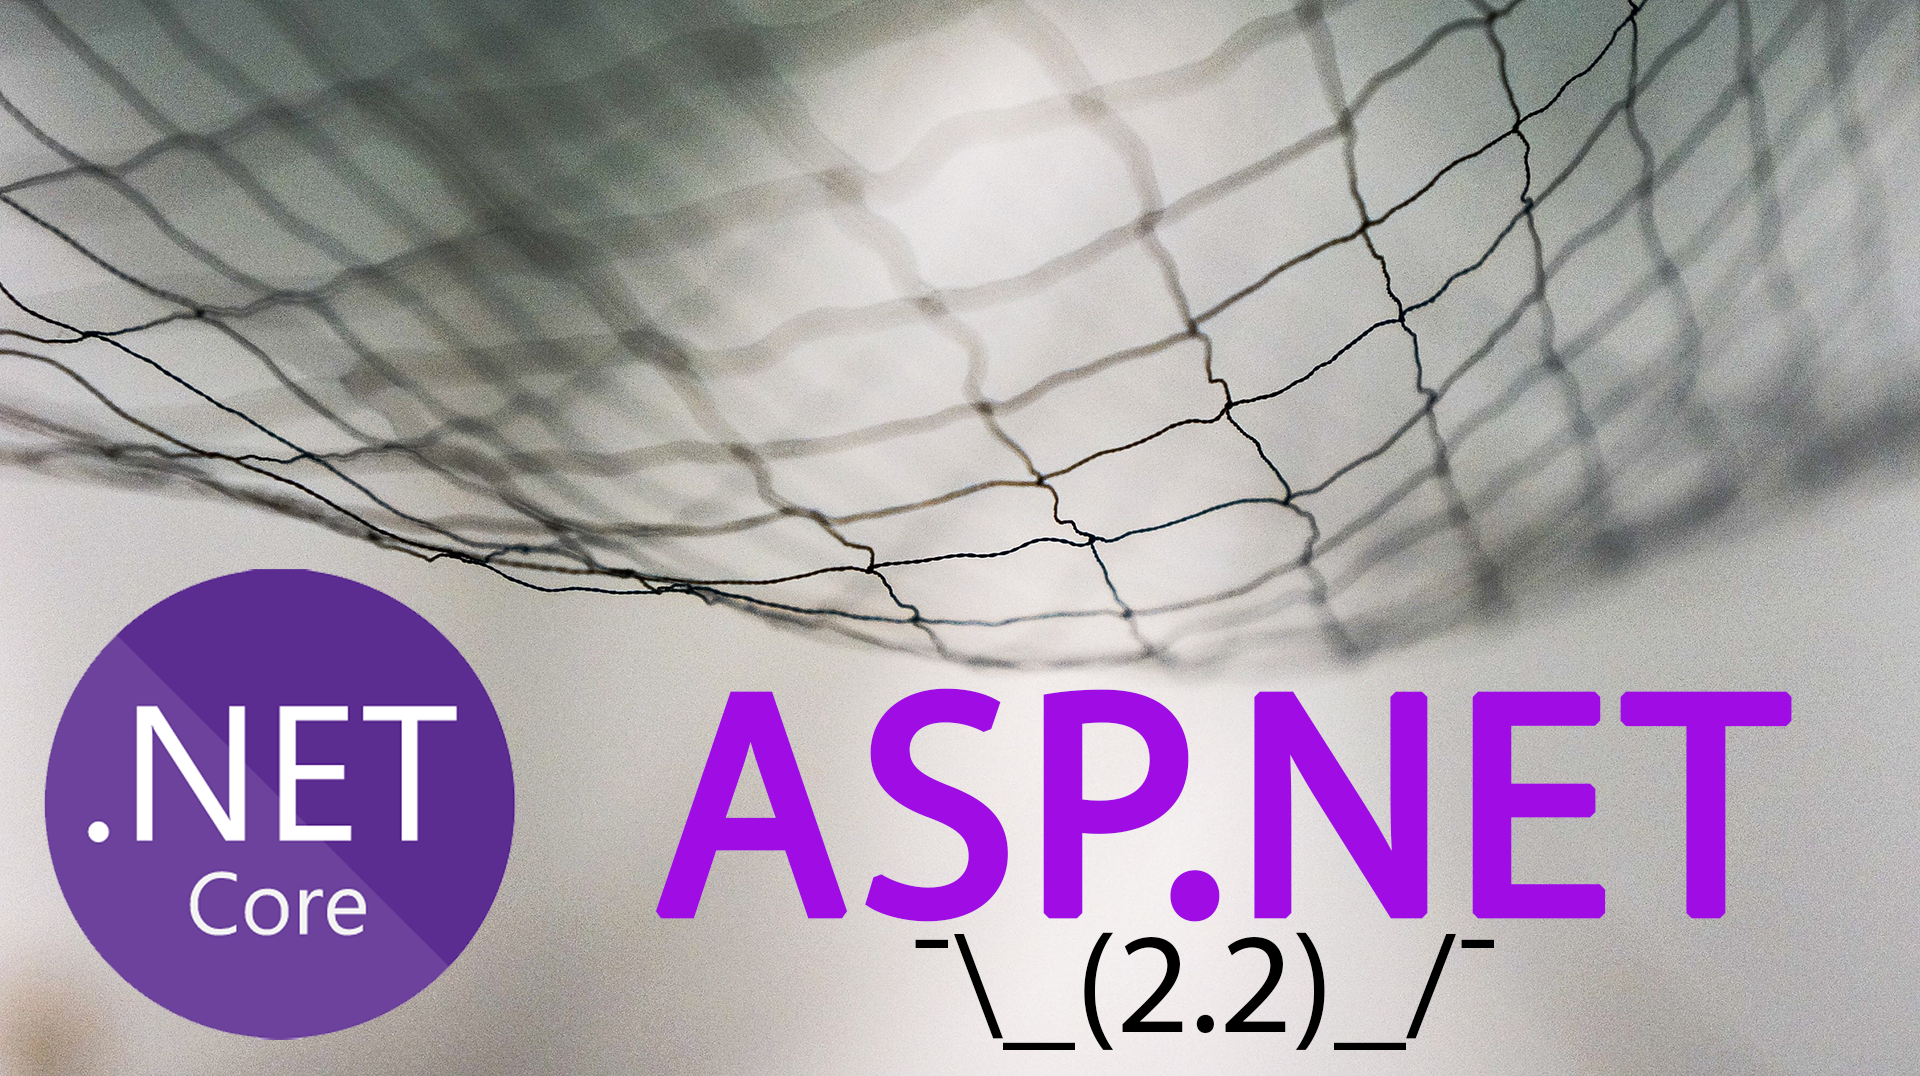 ASP.NET Core 2.2 has been released. What's new? (2 of 3)